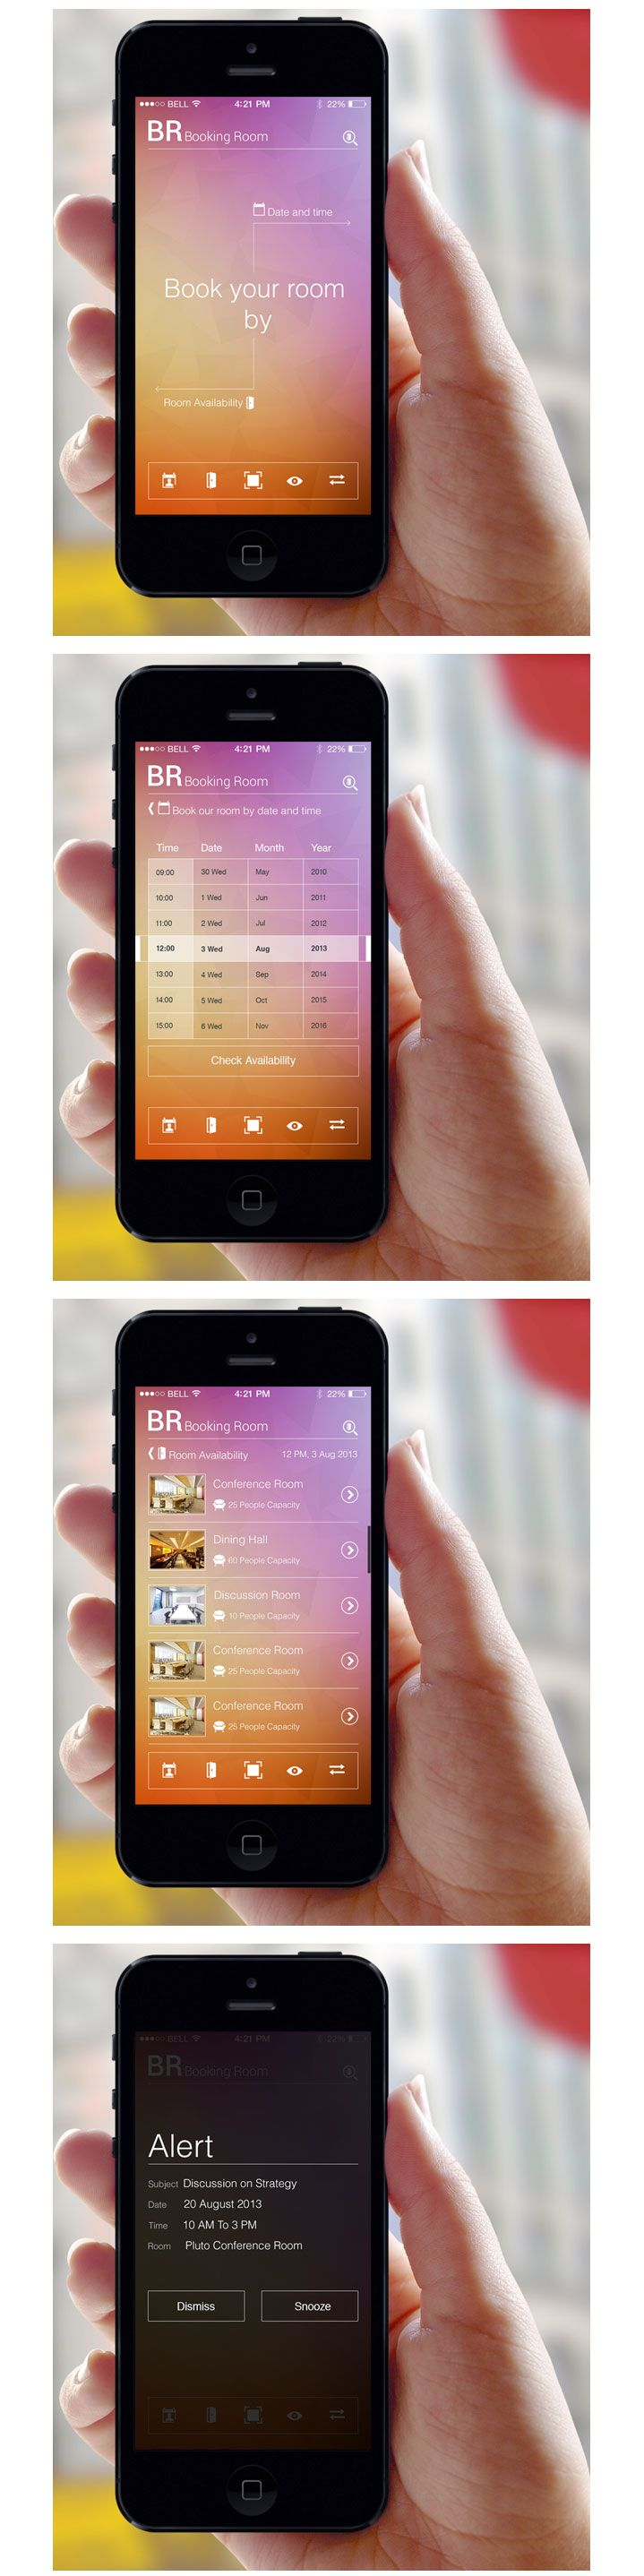 Booking Room / b hotel motel hospitality scheduling mobile app design